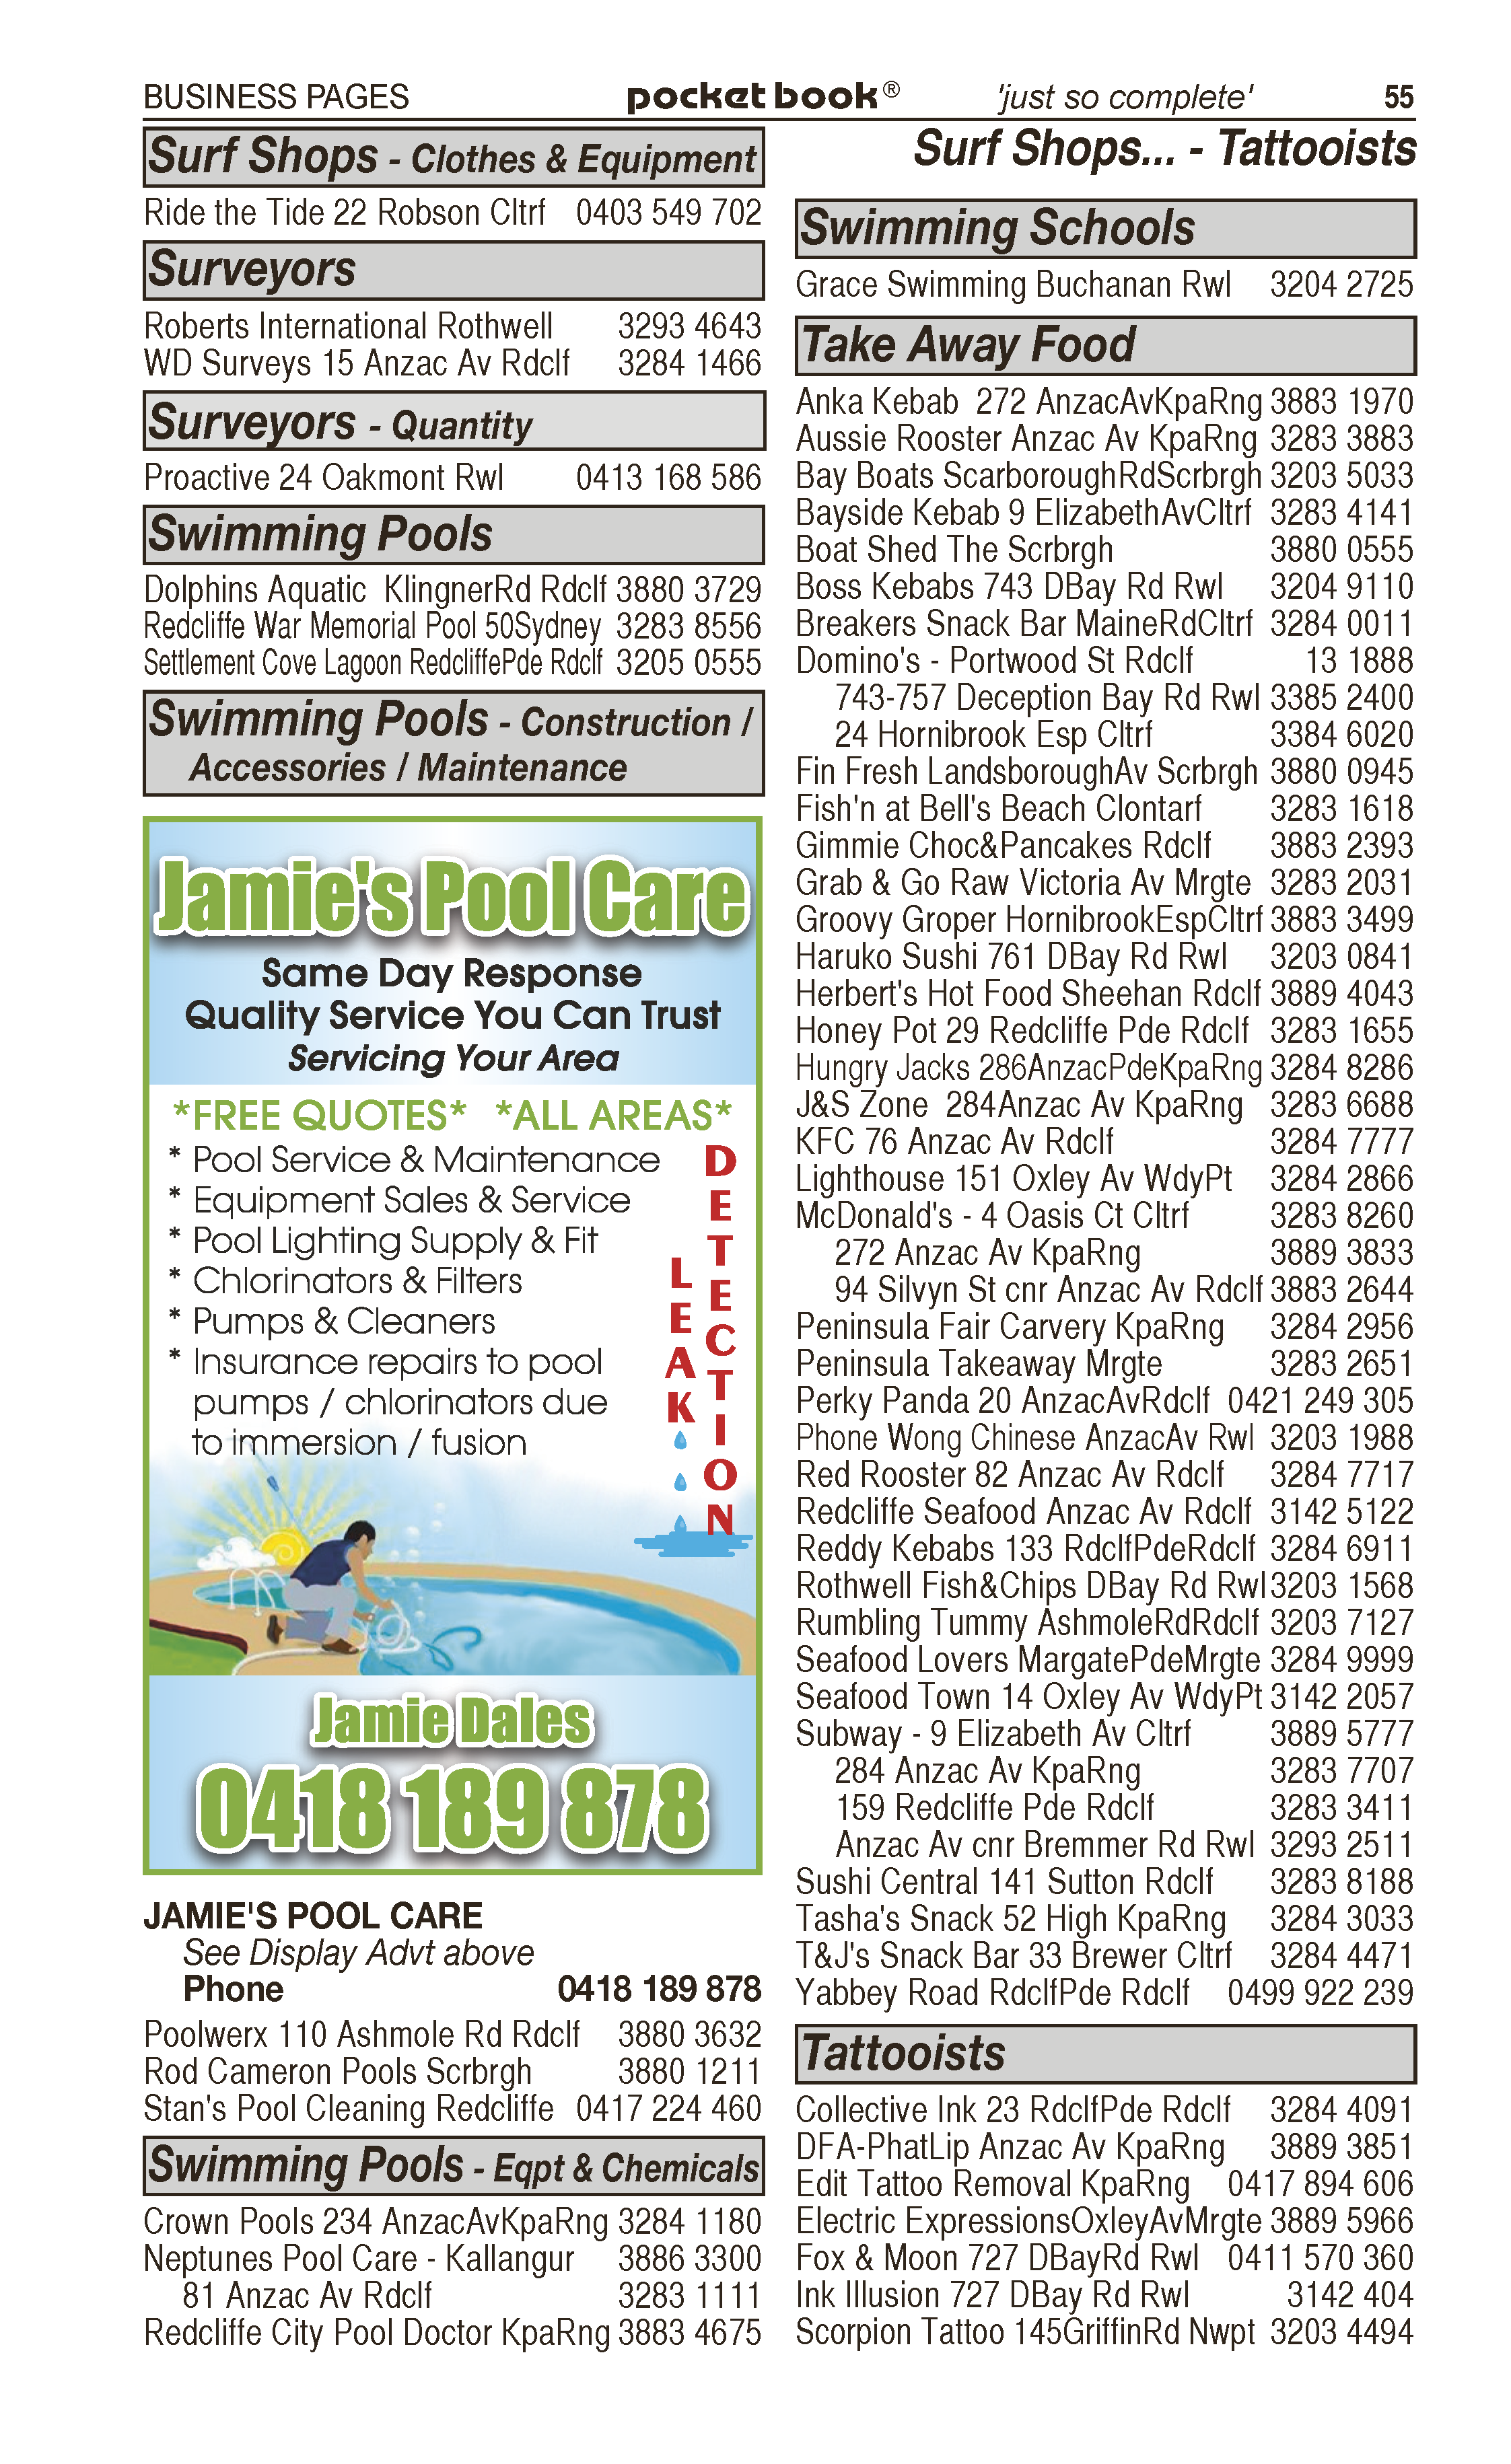 All Install | Television – Sales, Service, Repairs in Redcliffe | PBezy Pocket Books local directories - page 55